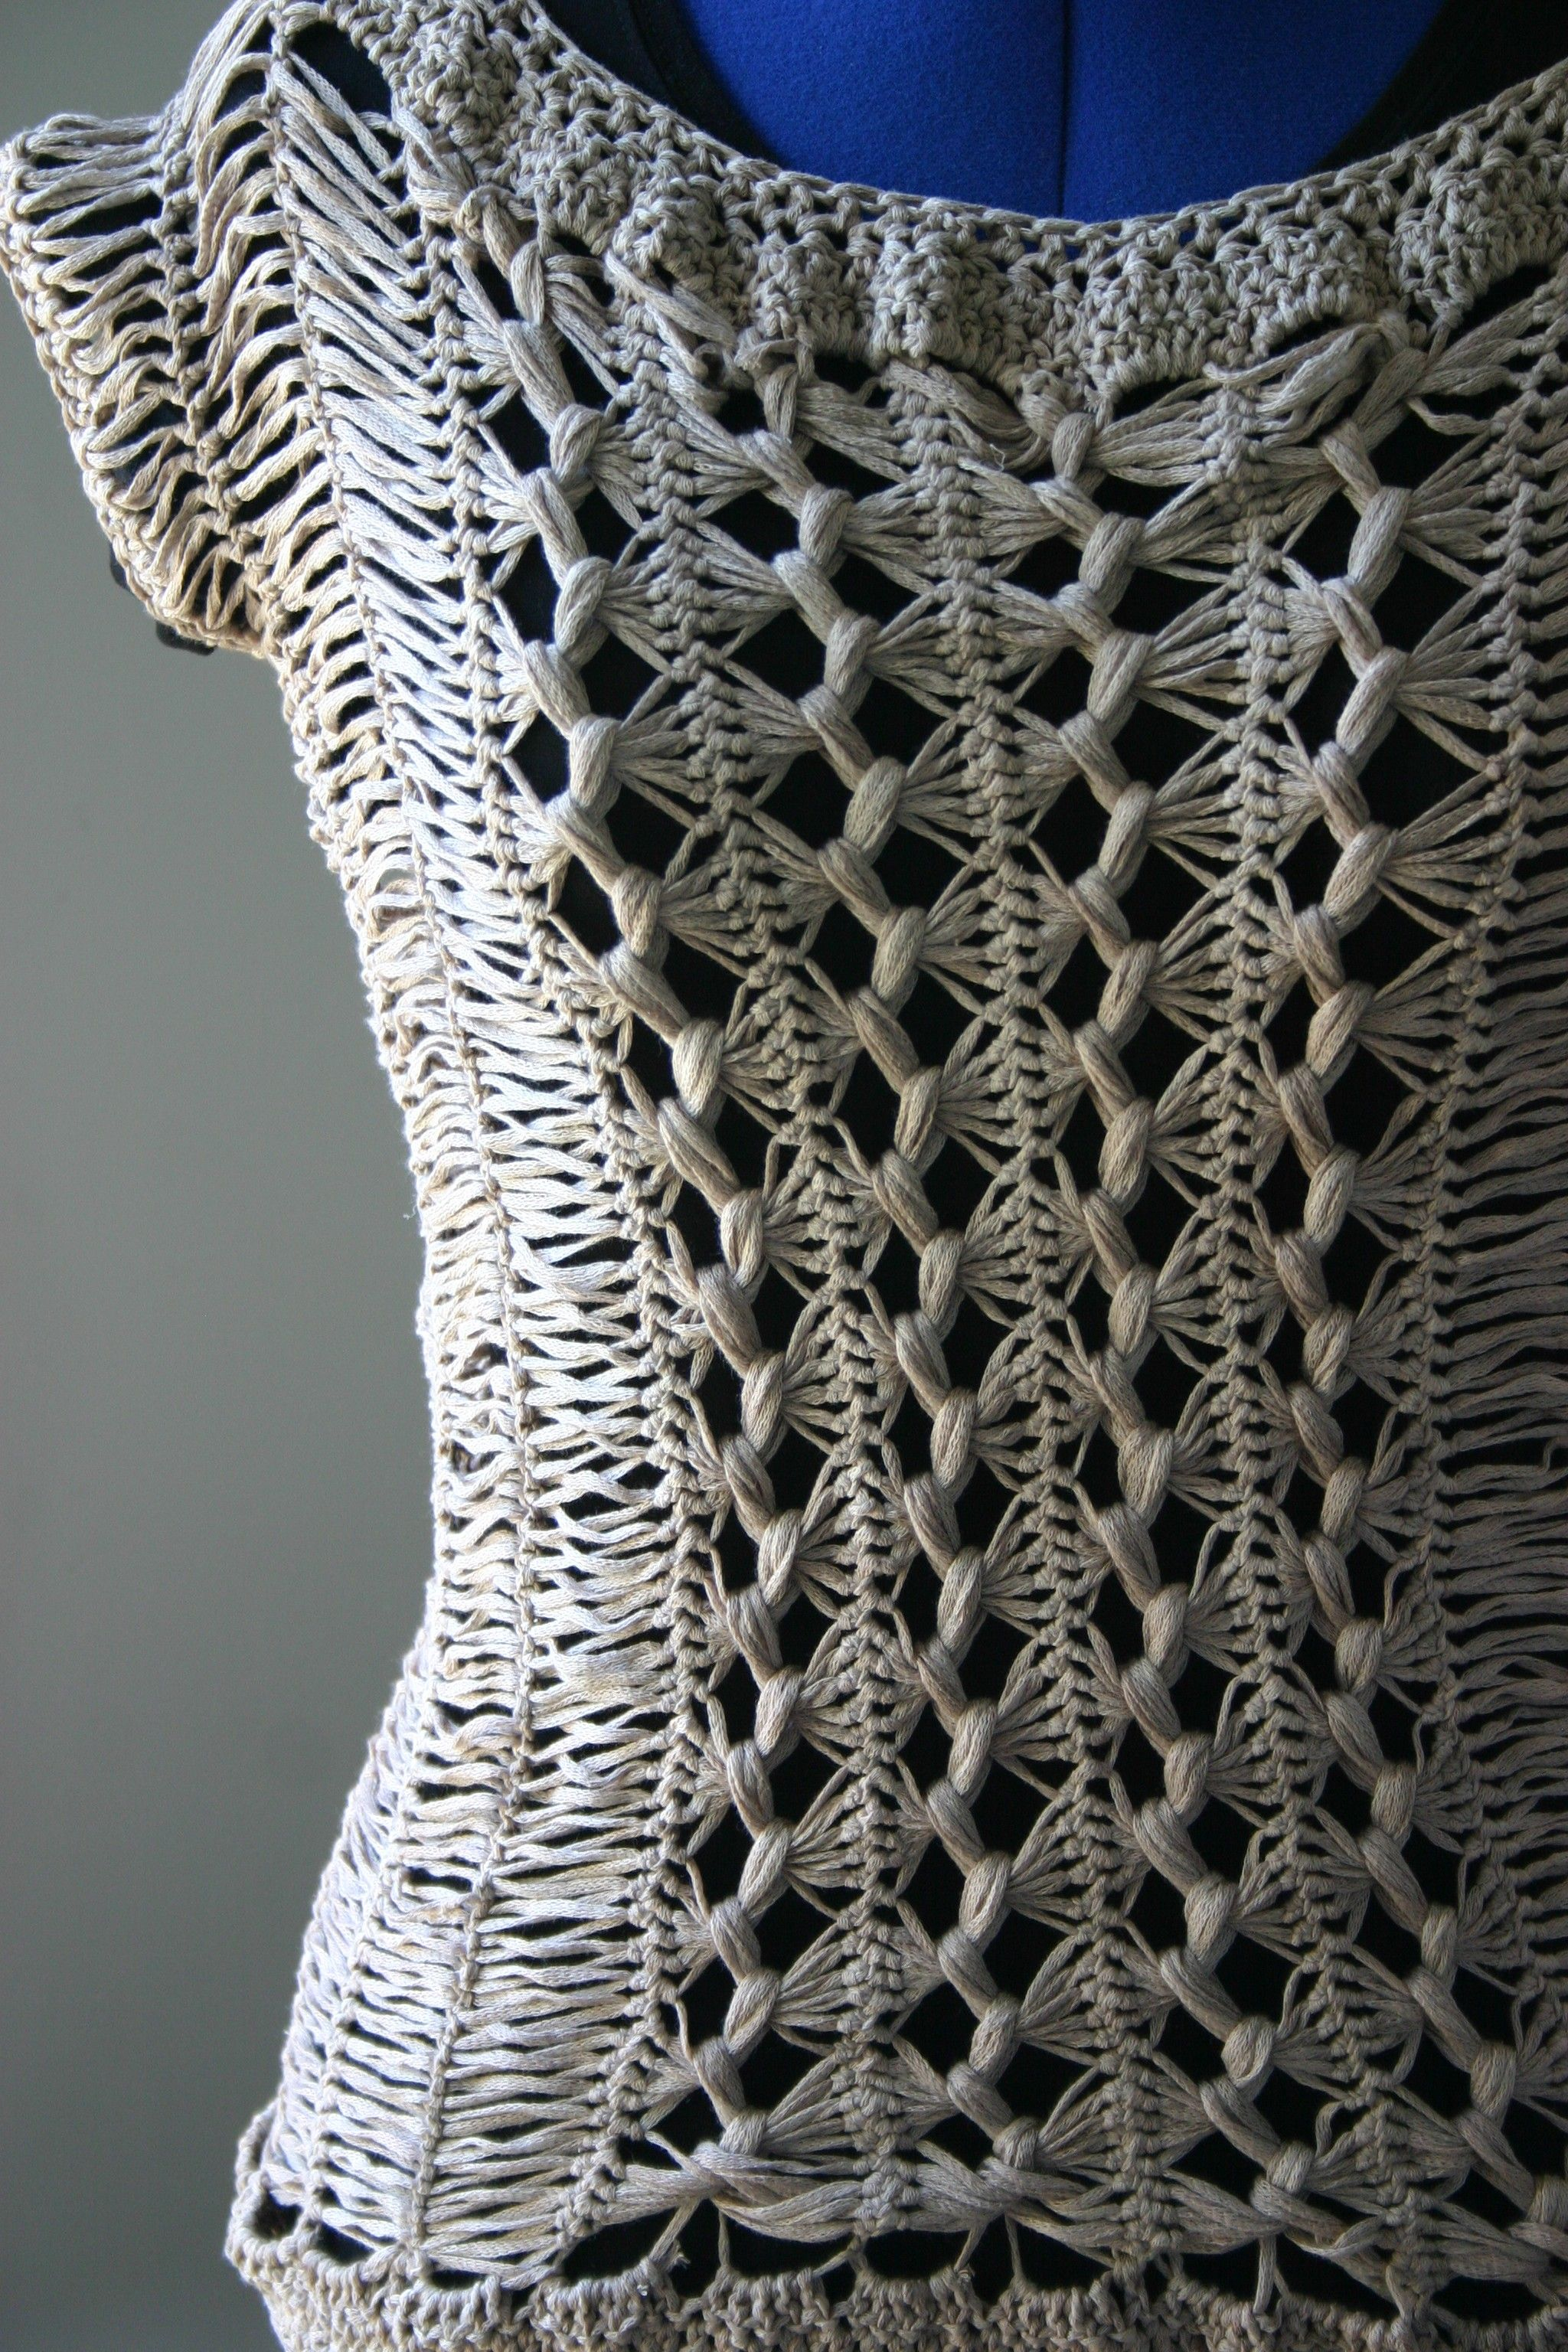 Hairpin lace top i like the pattern would make a cute scarf blusa hairpin lace top i like the pattern would make a cute scarf tutorial for crochet knitting one of the few hairpin lace garments i bankloansurffo Image collections